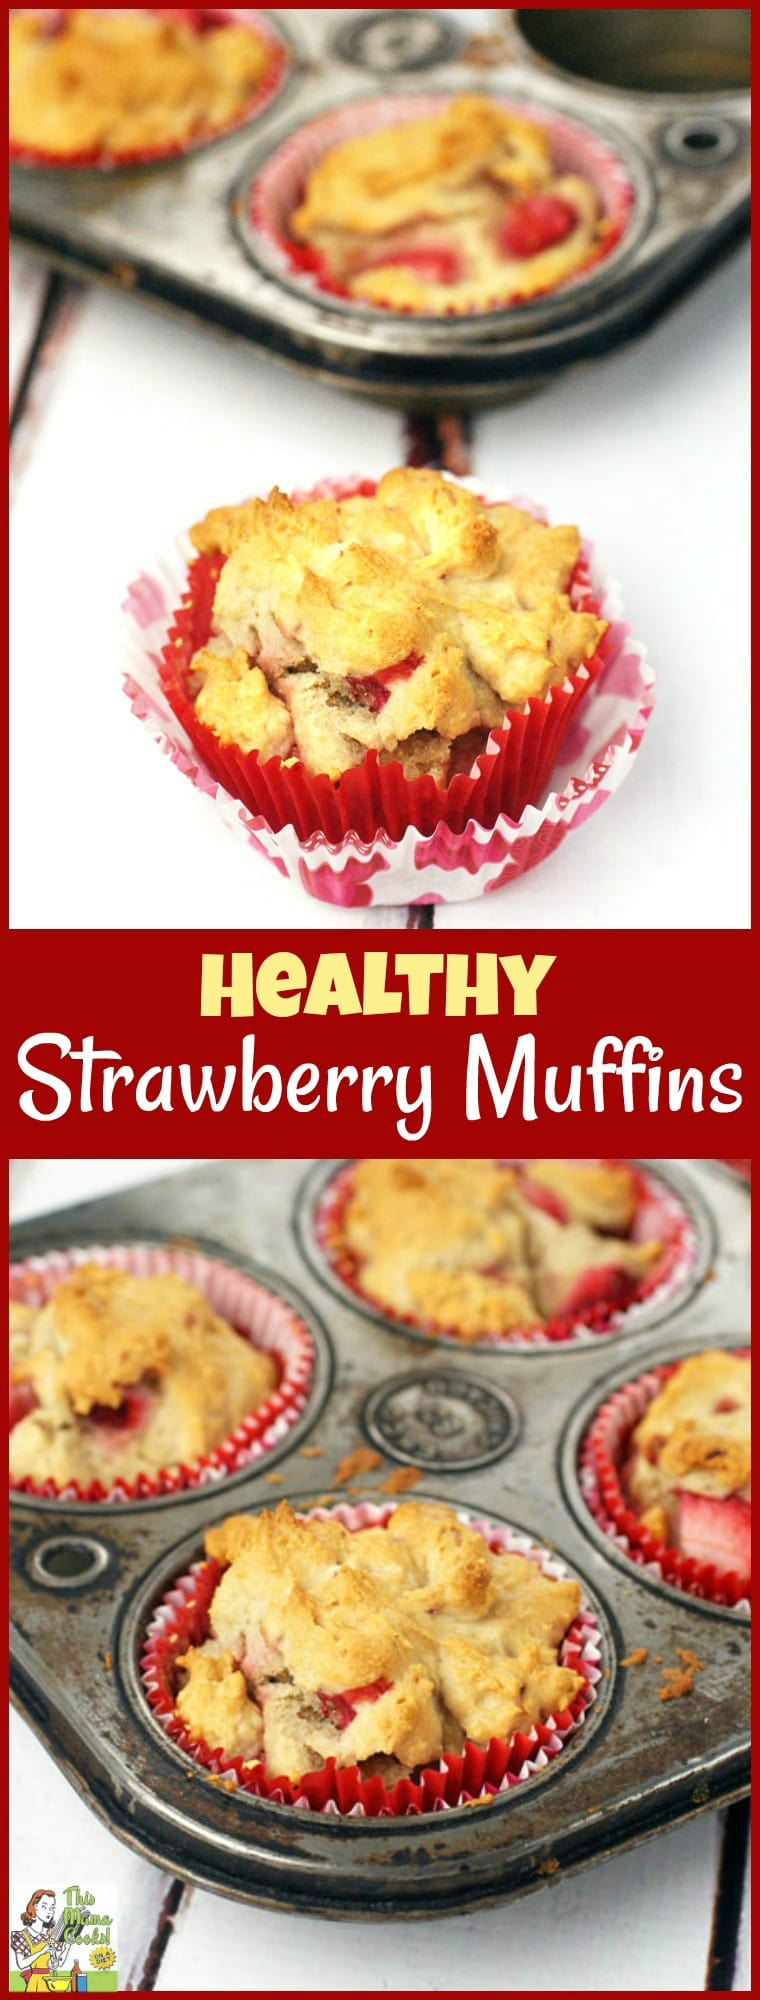 Are you looking for an easy gluten free muffin recipe? Bake up a batch of Healthy Strawberry Muffins! This strawberry muffins recipe can be made with frozen or fresh strawberries. Serve these gluten free strawberry muffins for a healthy breakfast, brunch, snack or dessert treat! #recipe #easy #recipeoftheday #healthyrecipes #glutenfree #easyrecipes #dessert #baking #dessertrecipes #strawberries #muffins #breakfast #brunch #snack #snacks